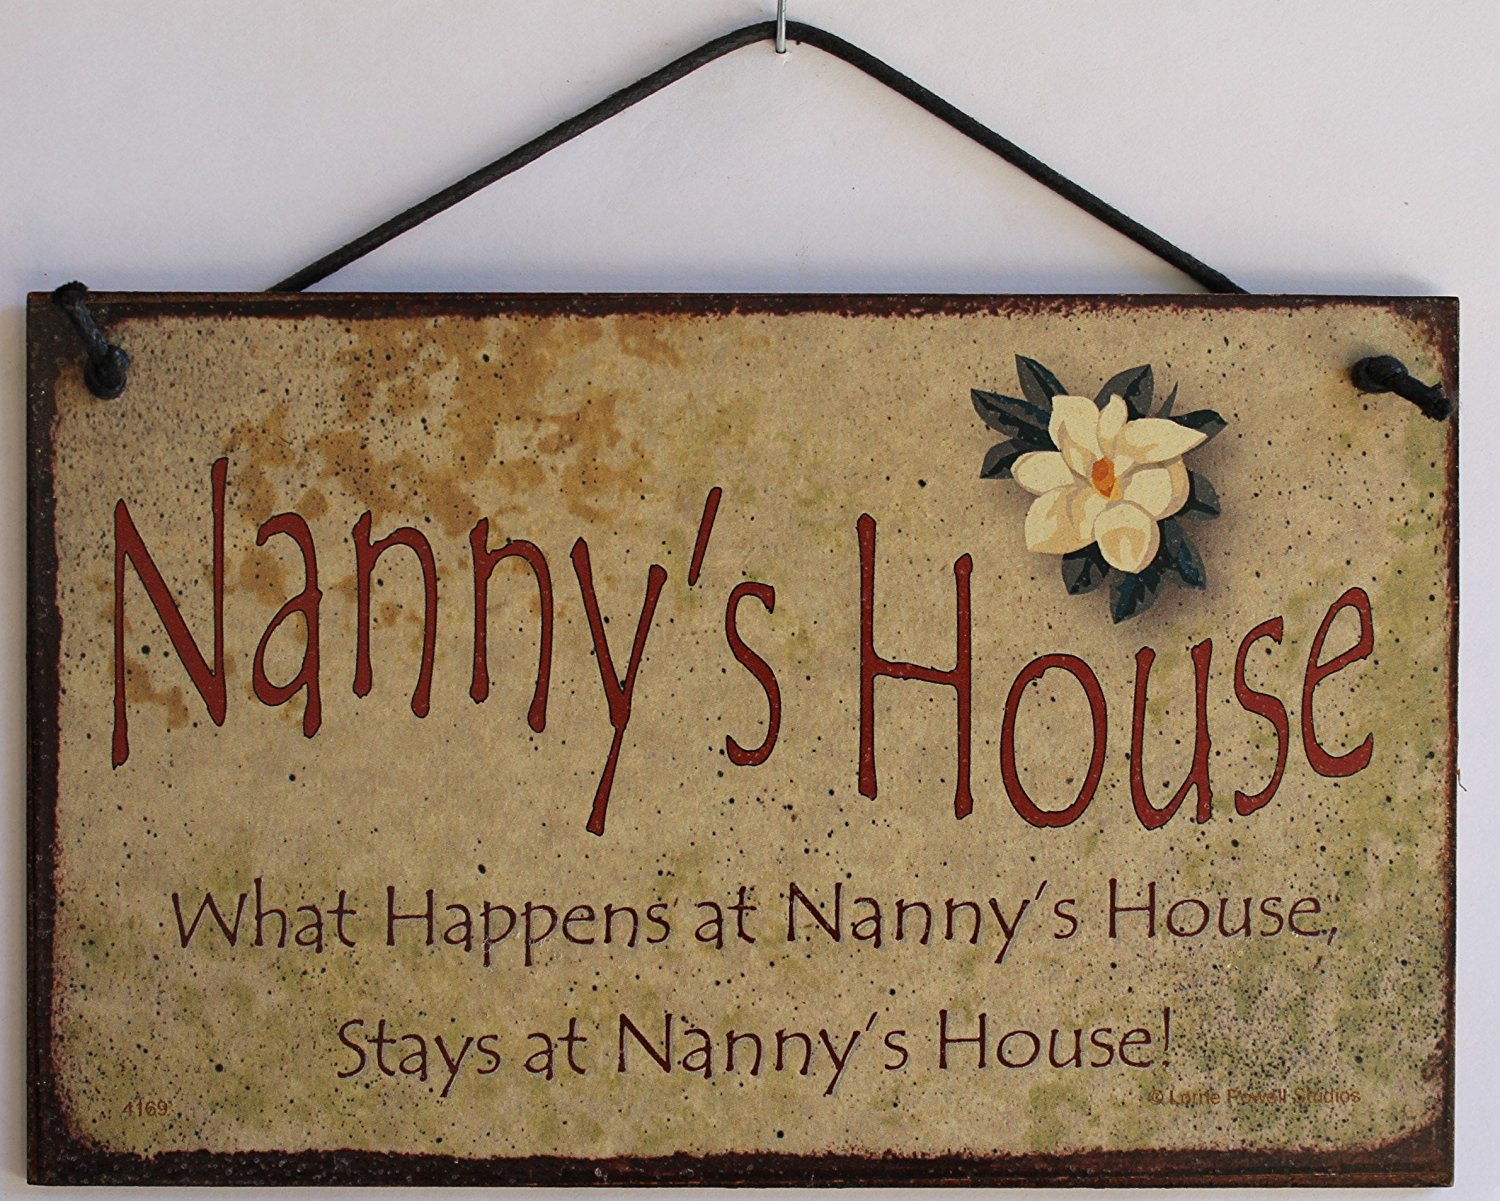 "5x8 Vintage Style Sign with Magnolia Saying, ""Nanny's House What Happens at Nanny's House, Stays at Nanny's House!"" Decorative Fun Universal Household Signs from Egbert's Treasures"